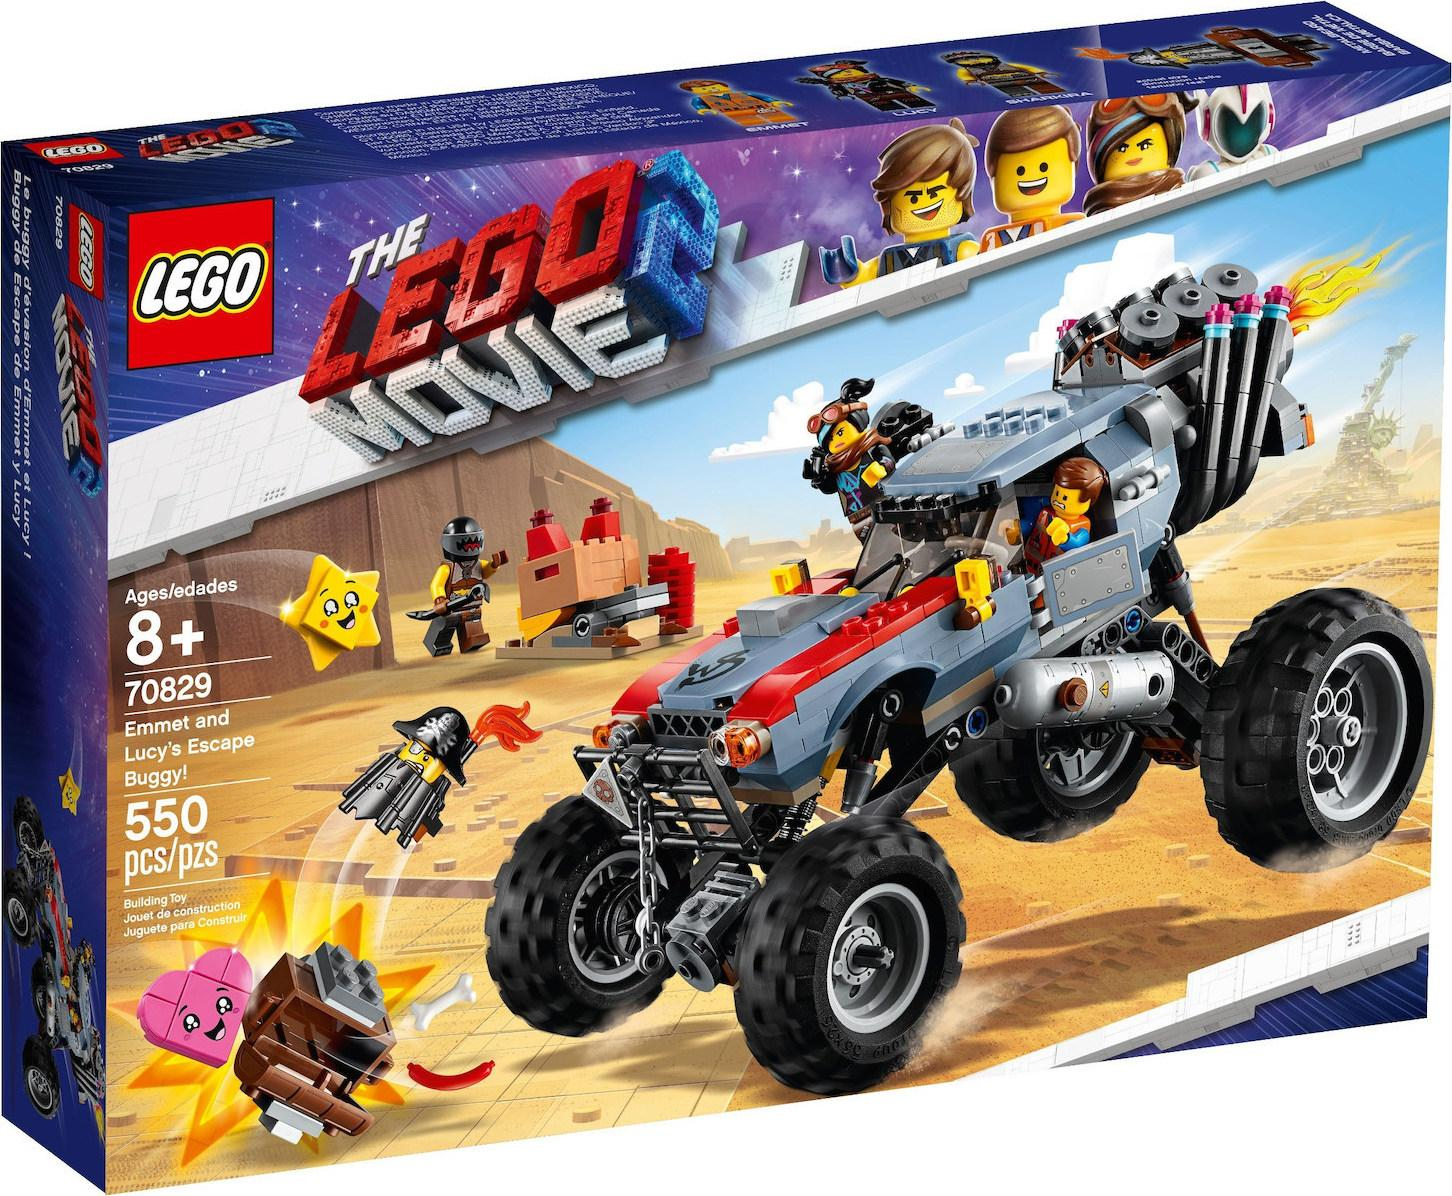 Lego Movie 2 Emmet & Lucy's Escape Buggy! (70829)